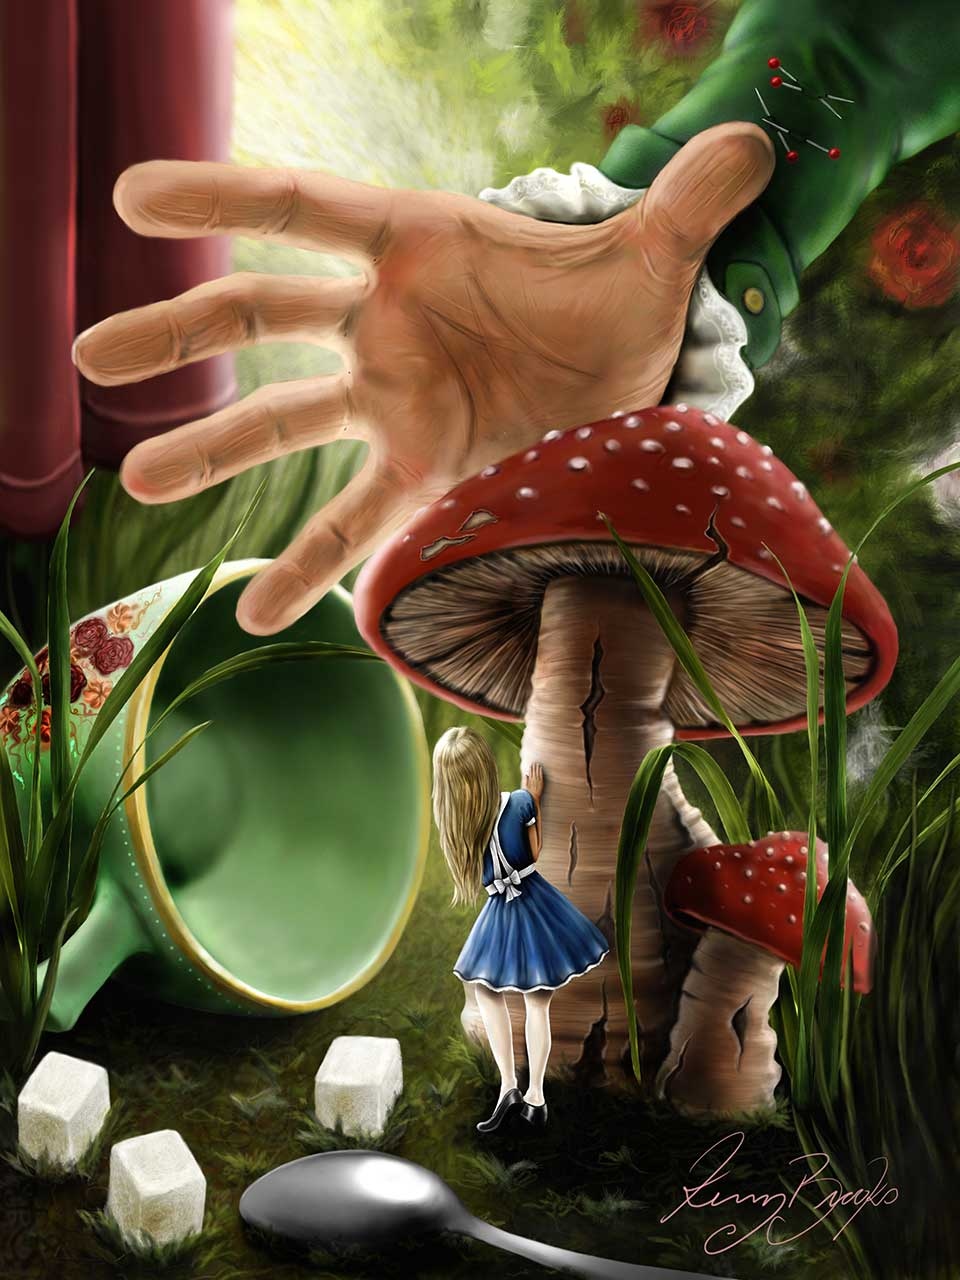 Alice, hiding behind a mushroom while the Mad Hatter reaches for her